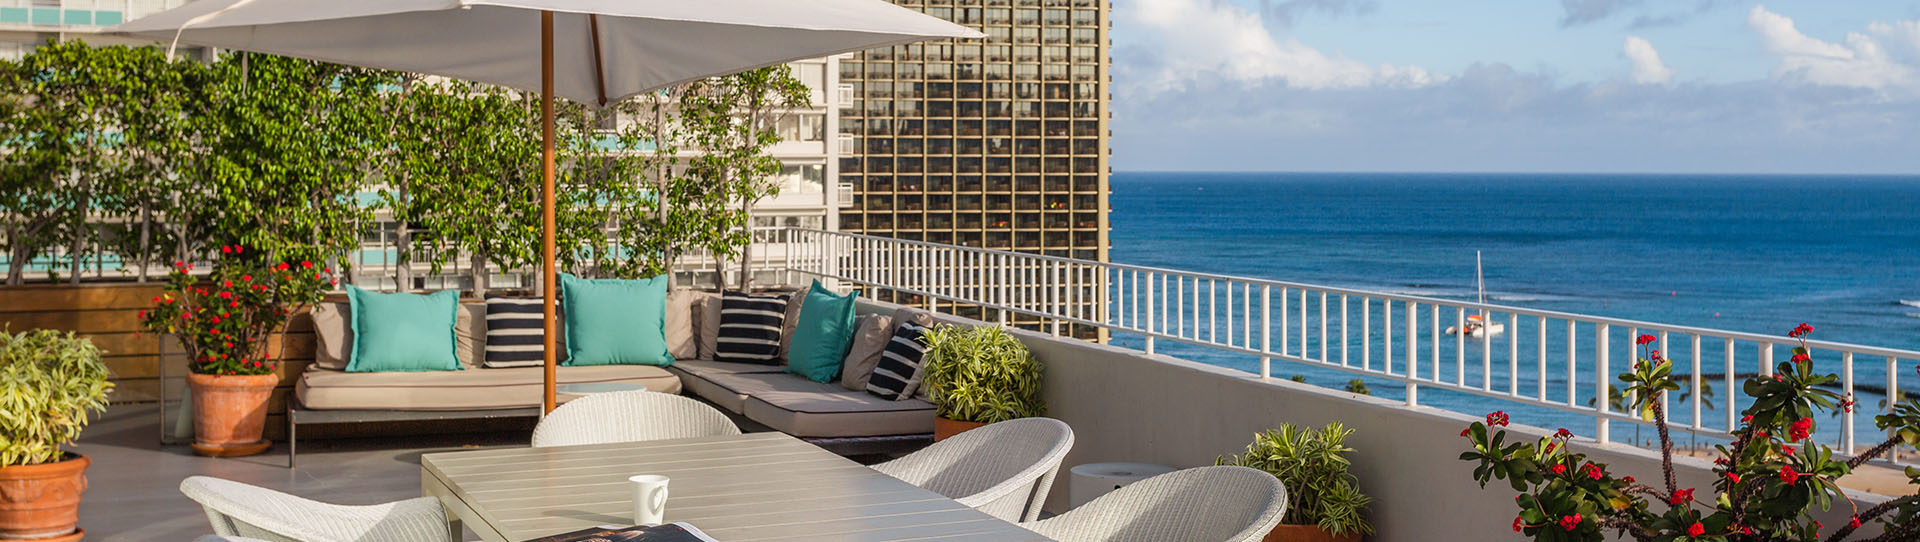 Resort penthouse balcony with trendy corner couch and dining table overlooking blue waters of Waikiki Beach